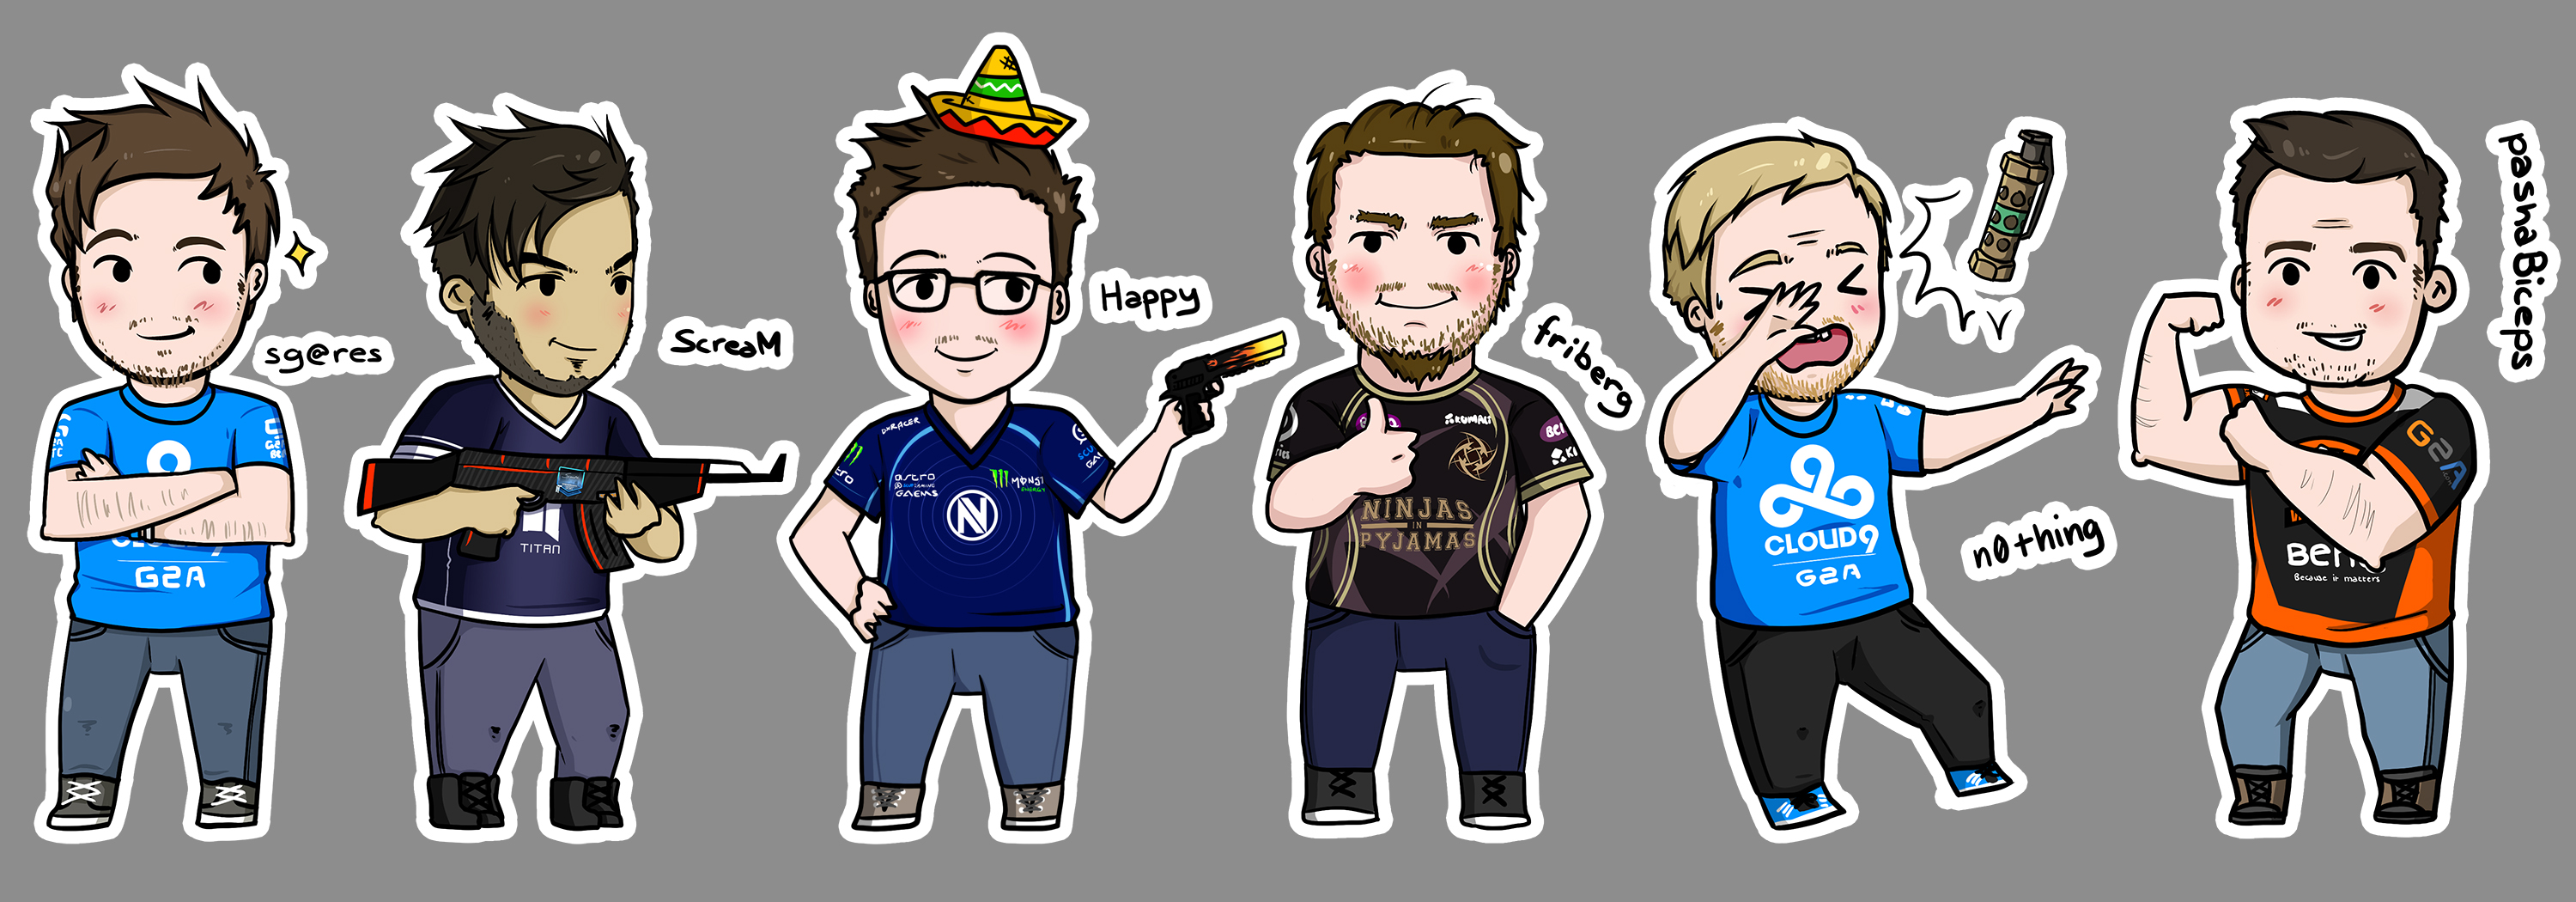 3000x1050 Some Csgo Player Drawings I'Ve Been Doing! )